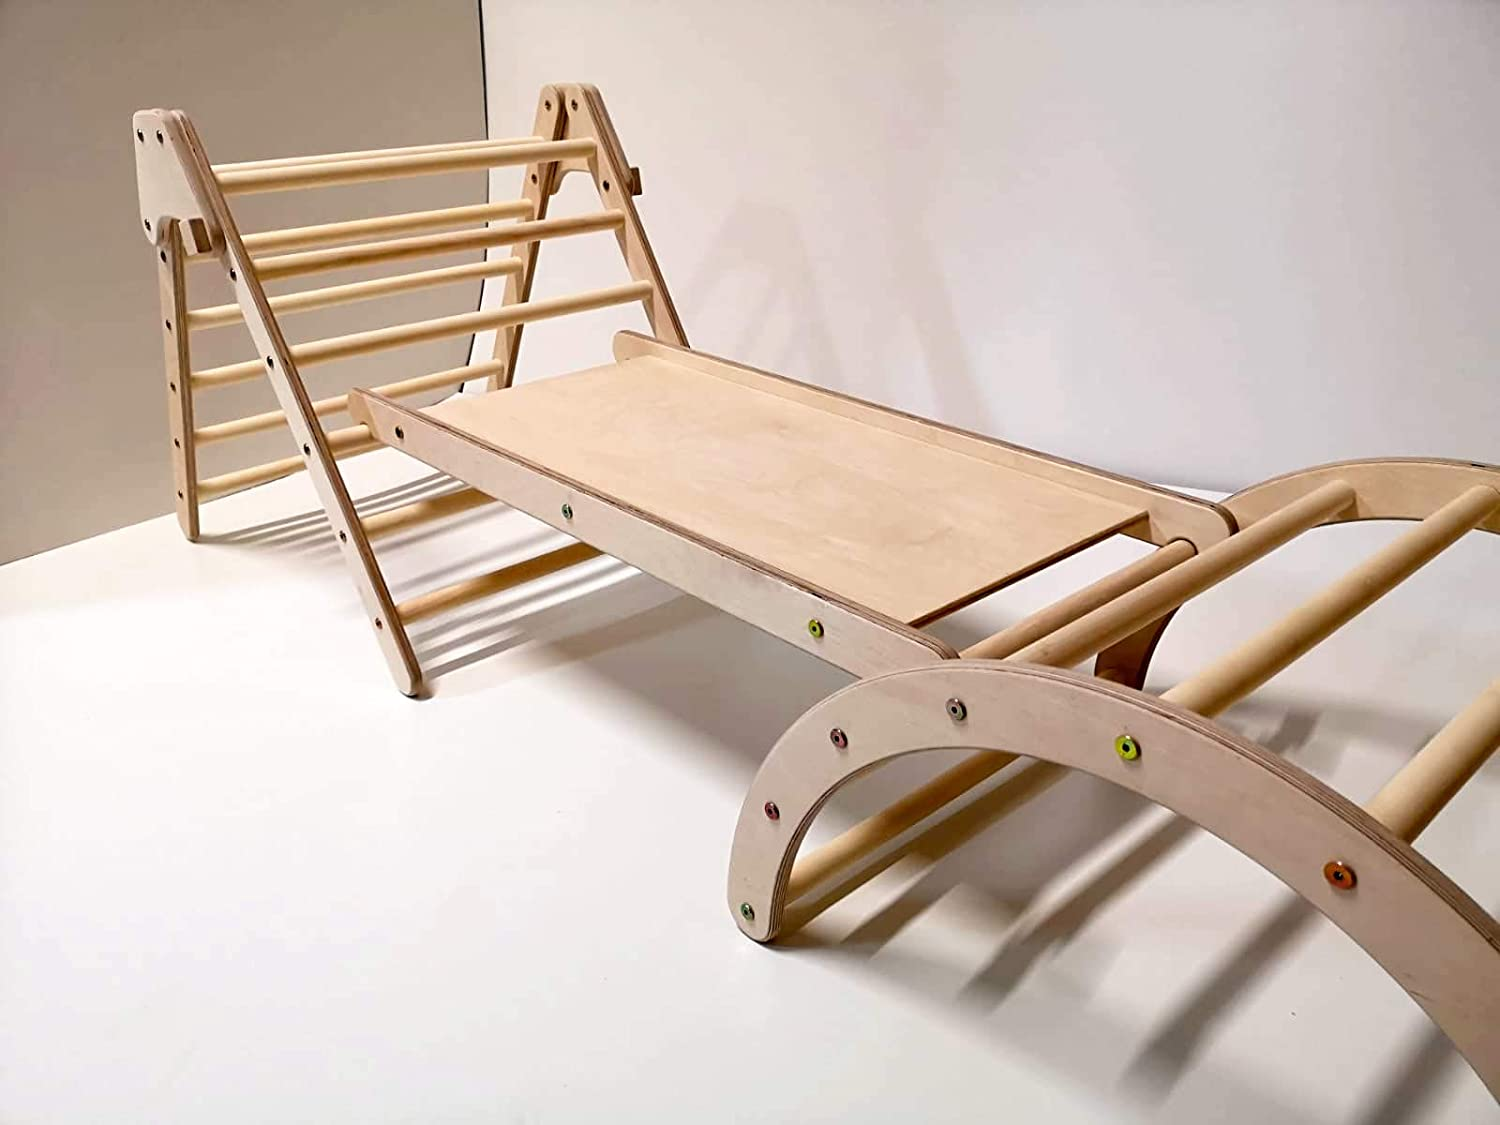 Sliding Board and Pikler Arch N//A Set of Montessori Foldable Pikler Triangle Wood Climbing Structure for Kids